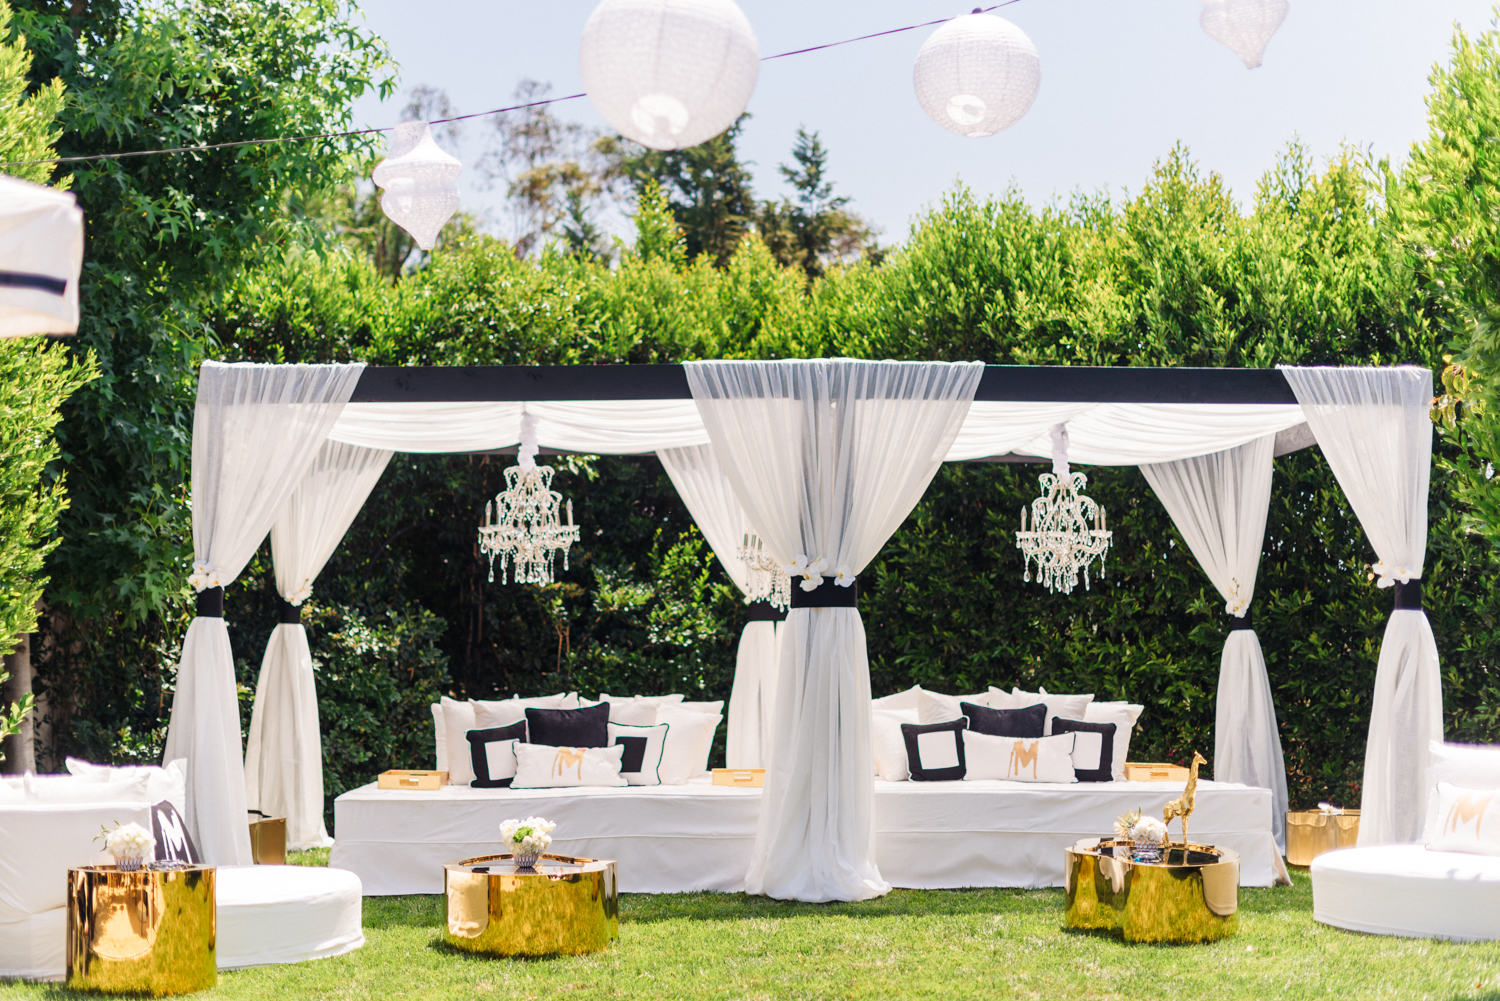 Cabana Glam - Sonia Sharma Events